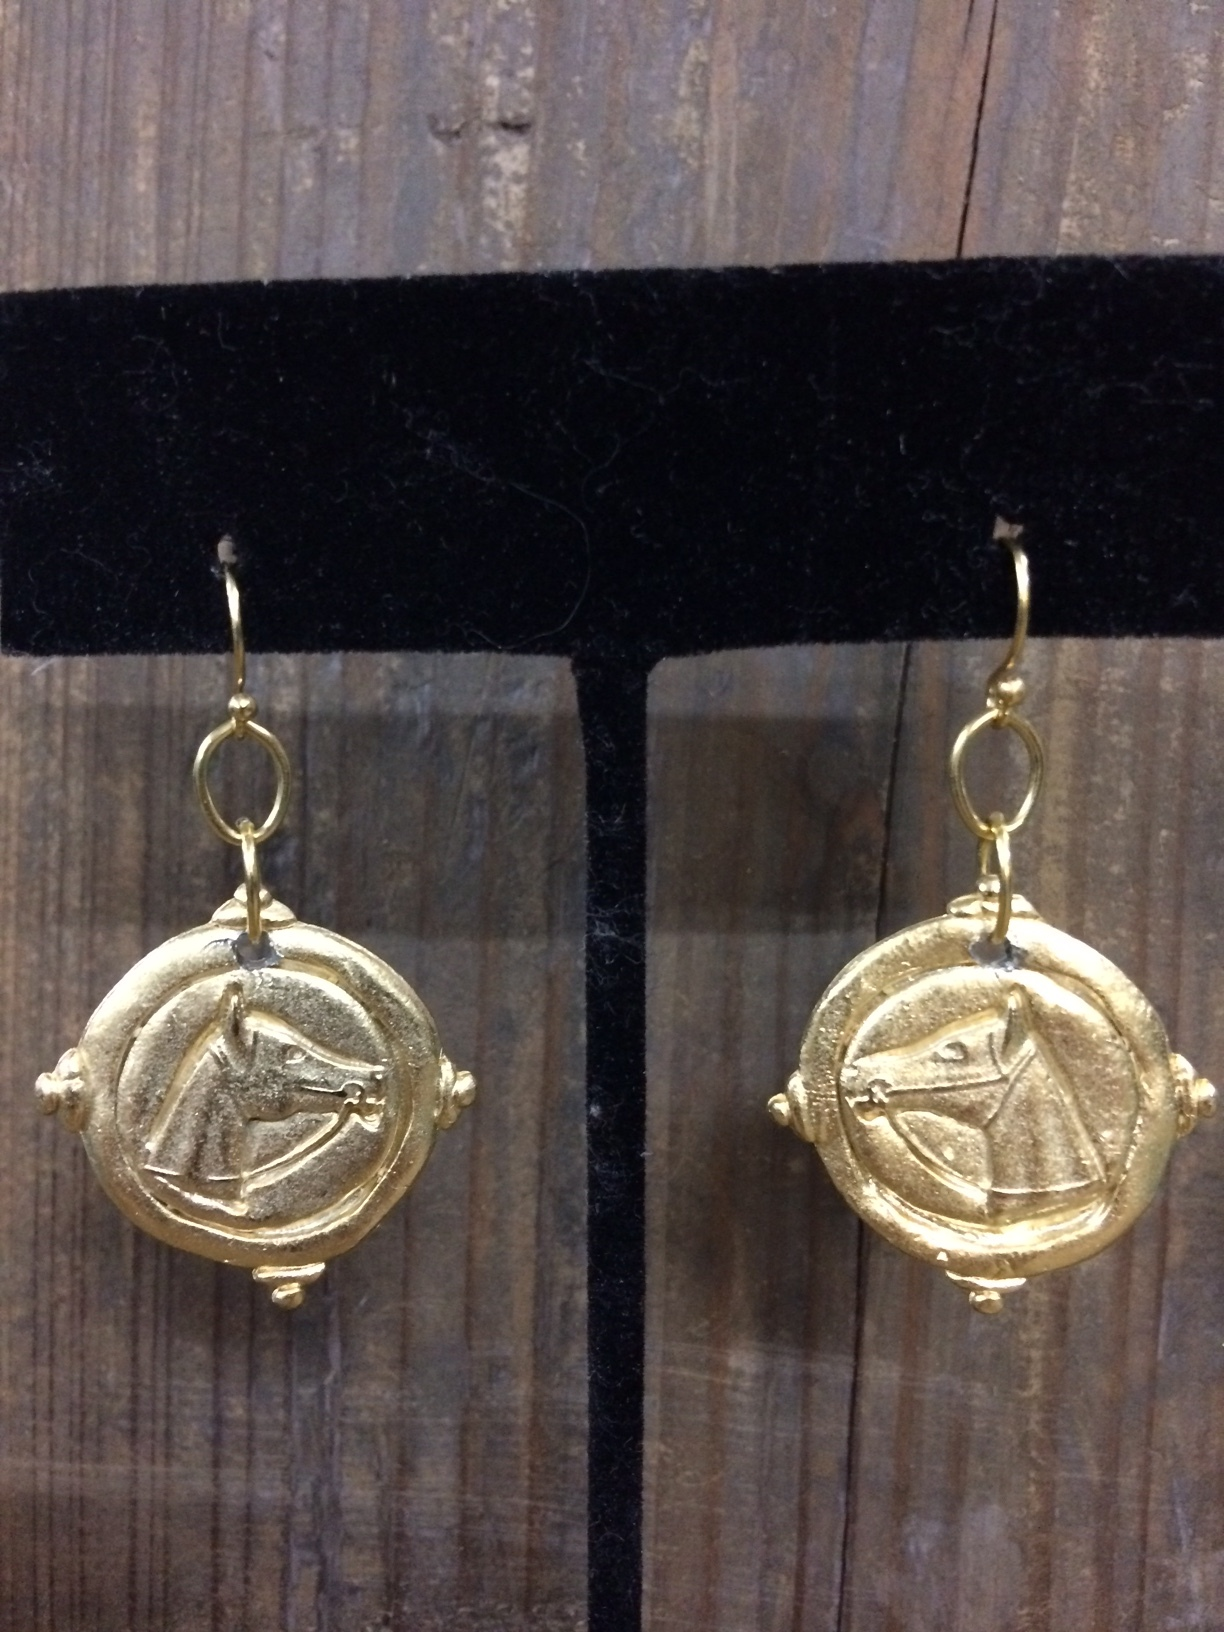 susan-shaw-equestrian-earrings-gold-horse-head-2